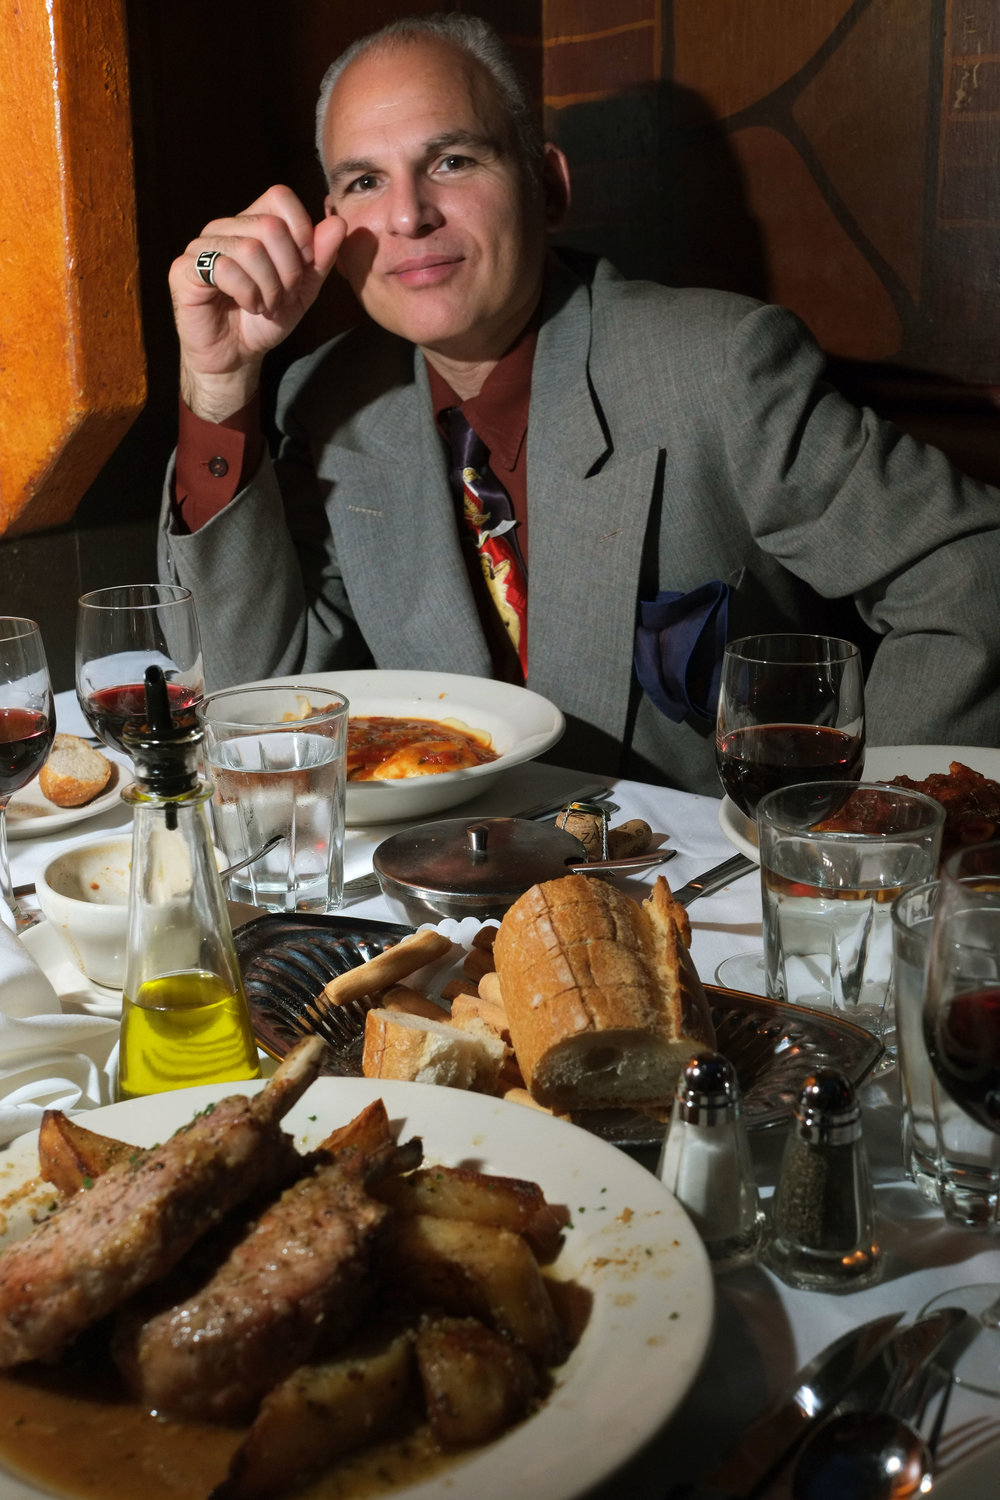 The man behind the name, James Ventrella celebrating new year's eve (and his birthday) at The Italian Village restaurant in Chicago. Photograph by Joel Paterson.